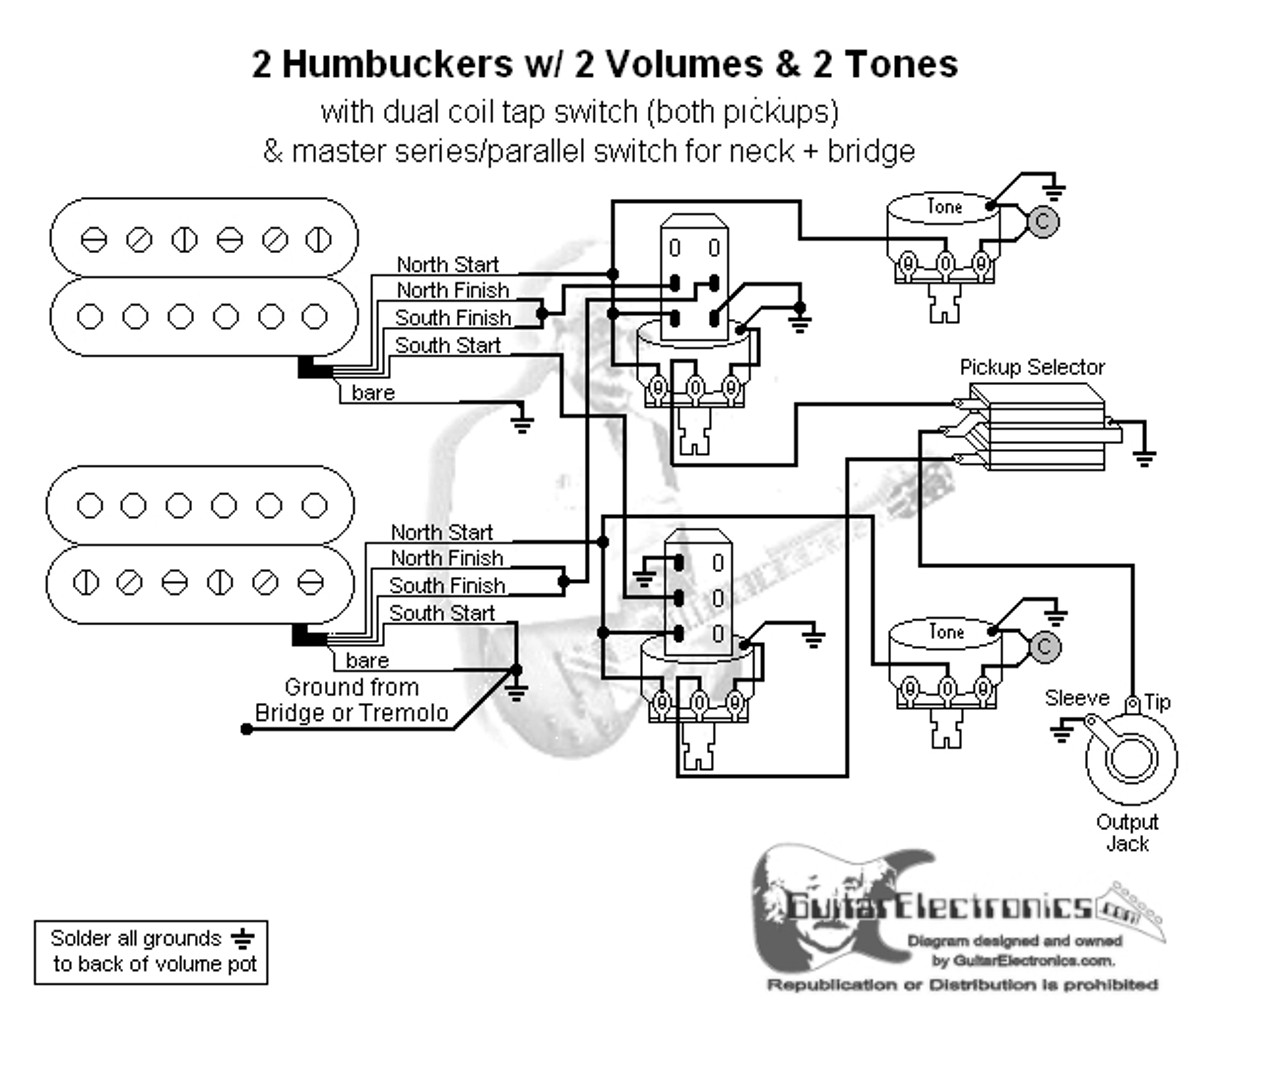 3 Way Toggle Switch Les Paul Wiring Diagram | Wiring Diagrams  Way Switch Humbucker Wiring Diagram on 2 lights 2 switches diagram, easy 4-way switch diagram, lutron 3-way switch diagram, 3 prong switch wiring diagram, single pole light switch wiring diagram, 5 way switch wiring diagram, marine rocker switch actuator diagram,